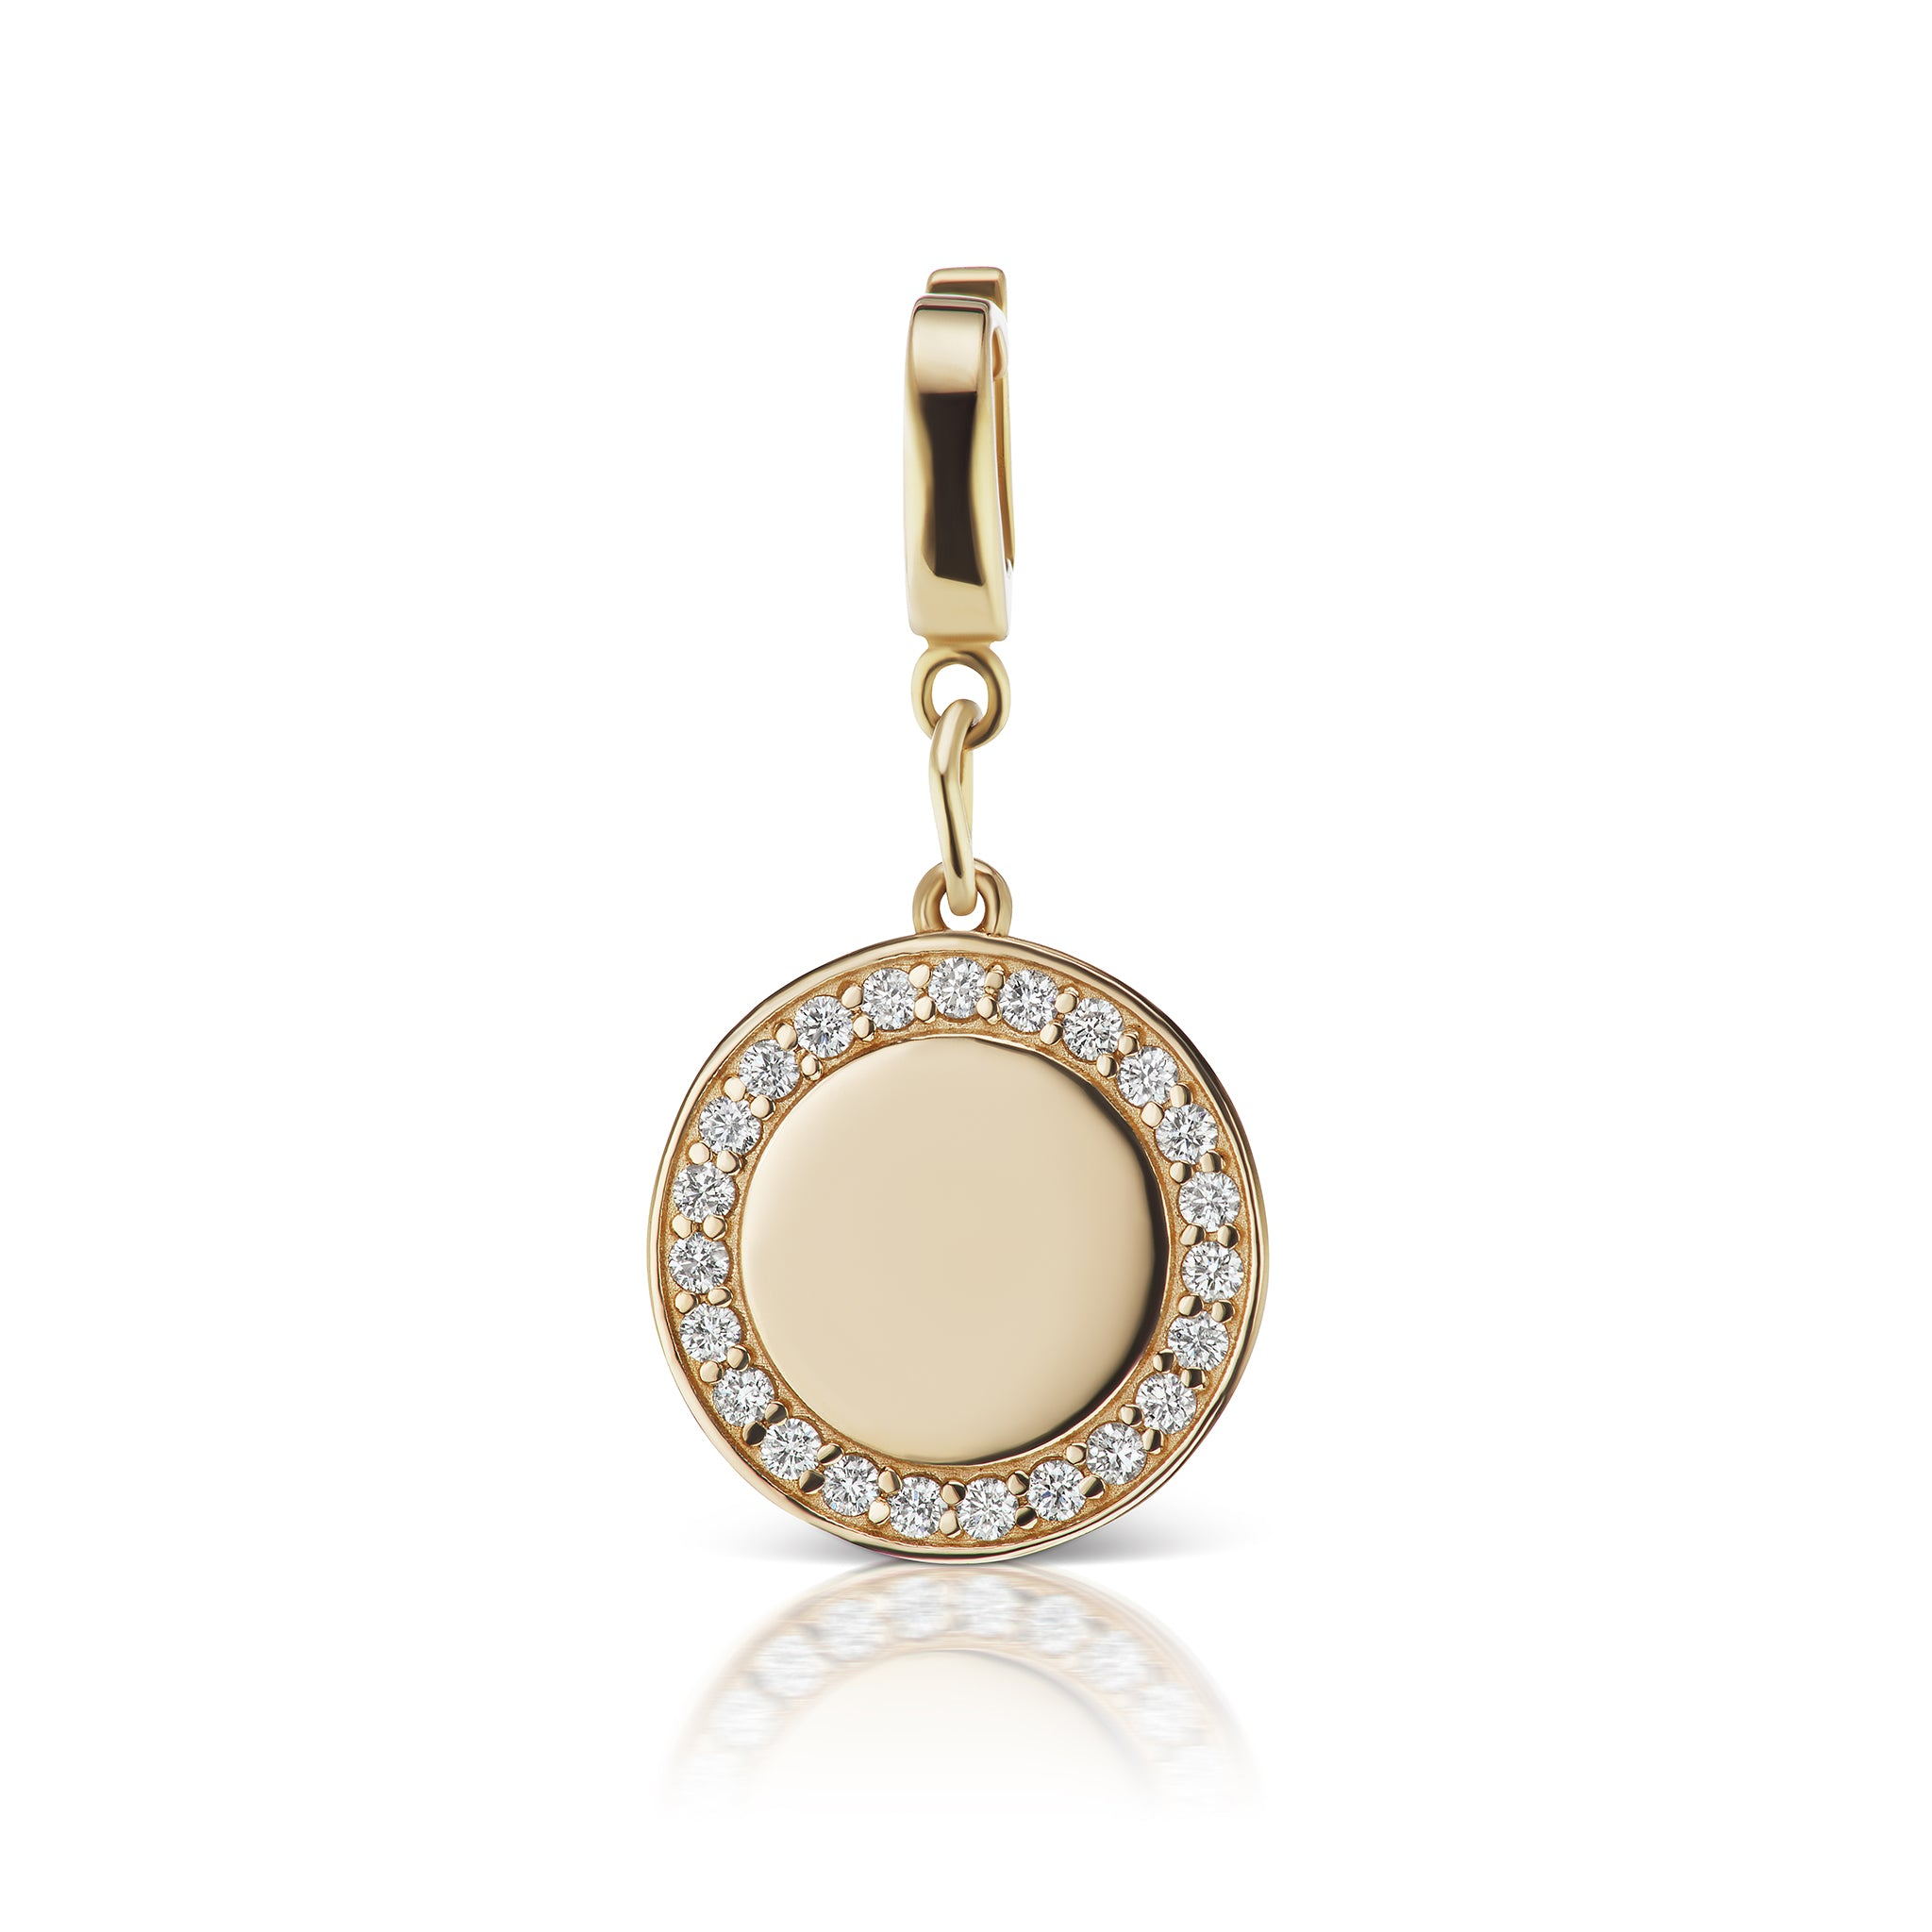 The Gold Diamond Signature Charm